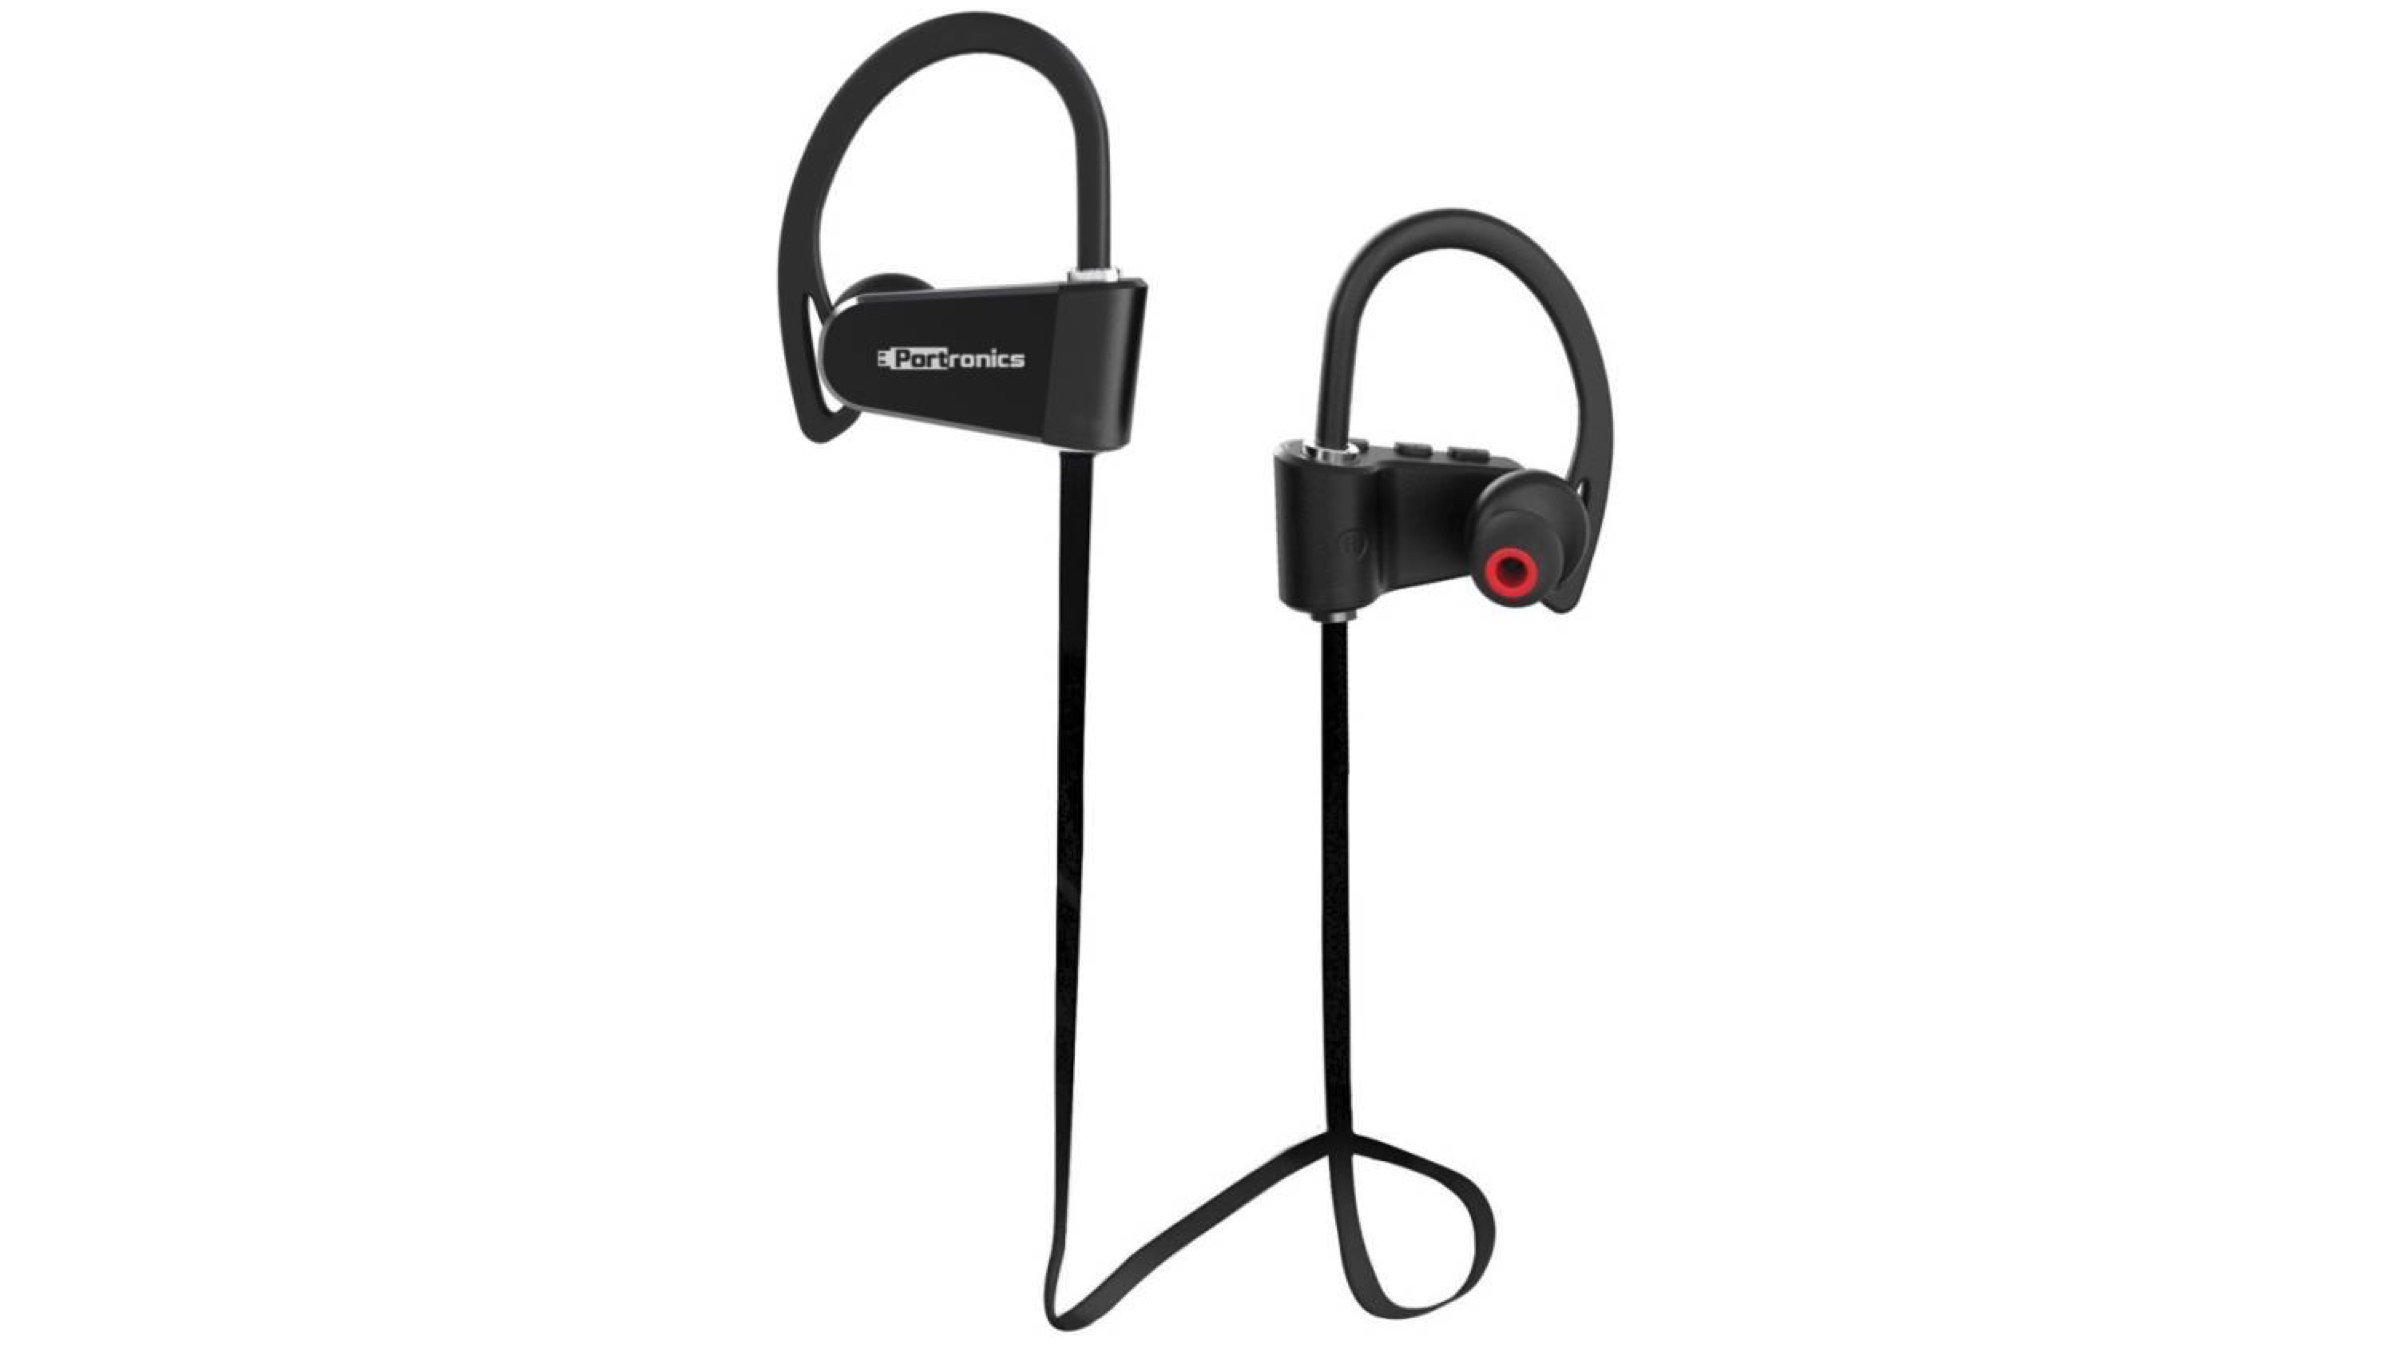 2eb1605a953 The Portronics Harmonics Play are a good option for anyone looking to buy  wireless earphones under Rs 2,000.